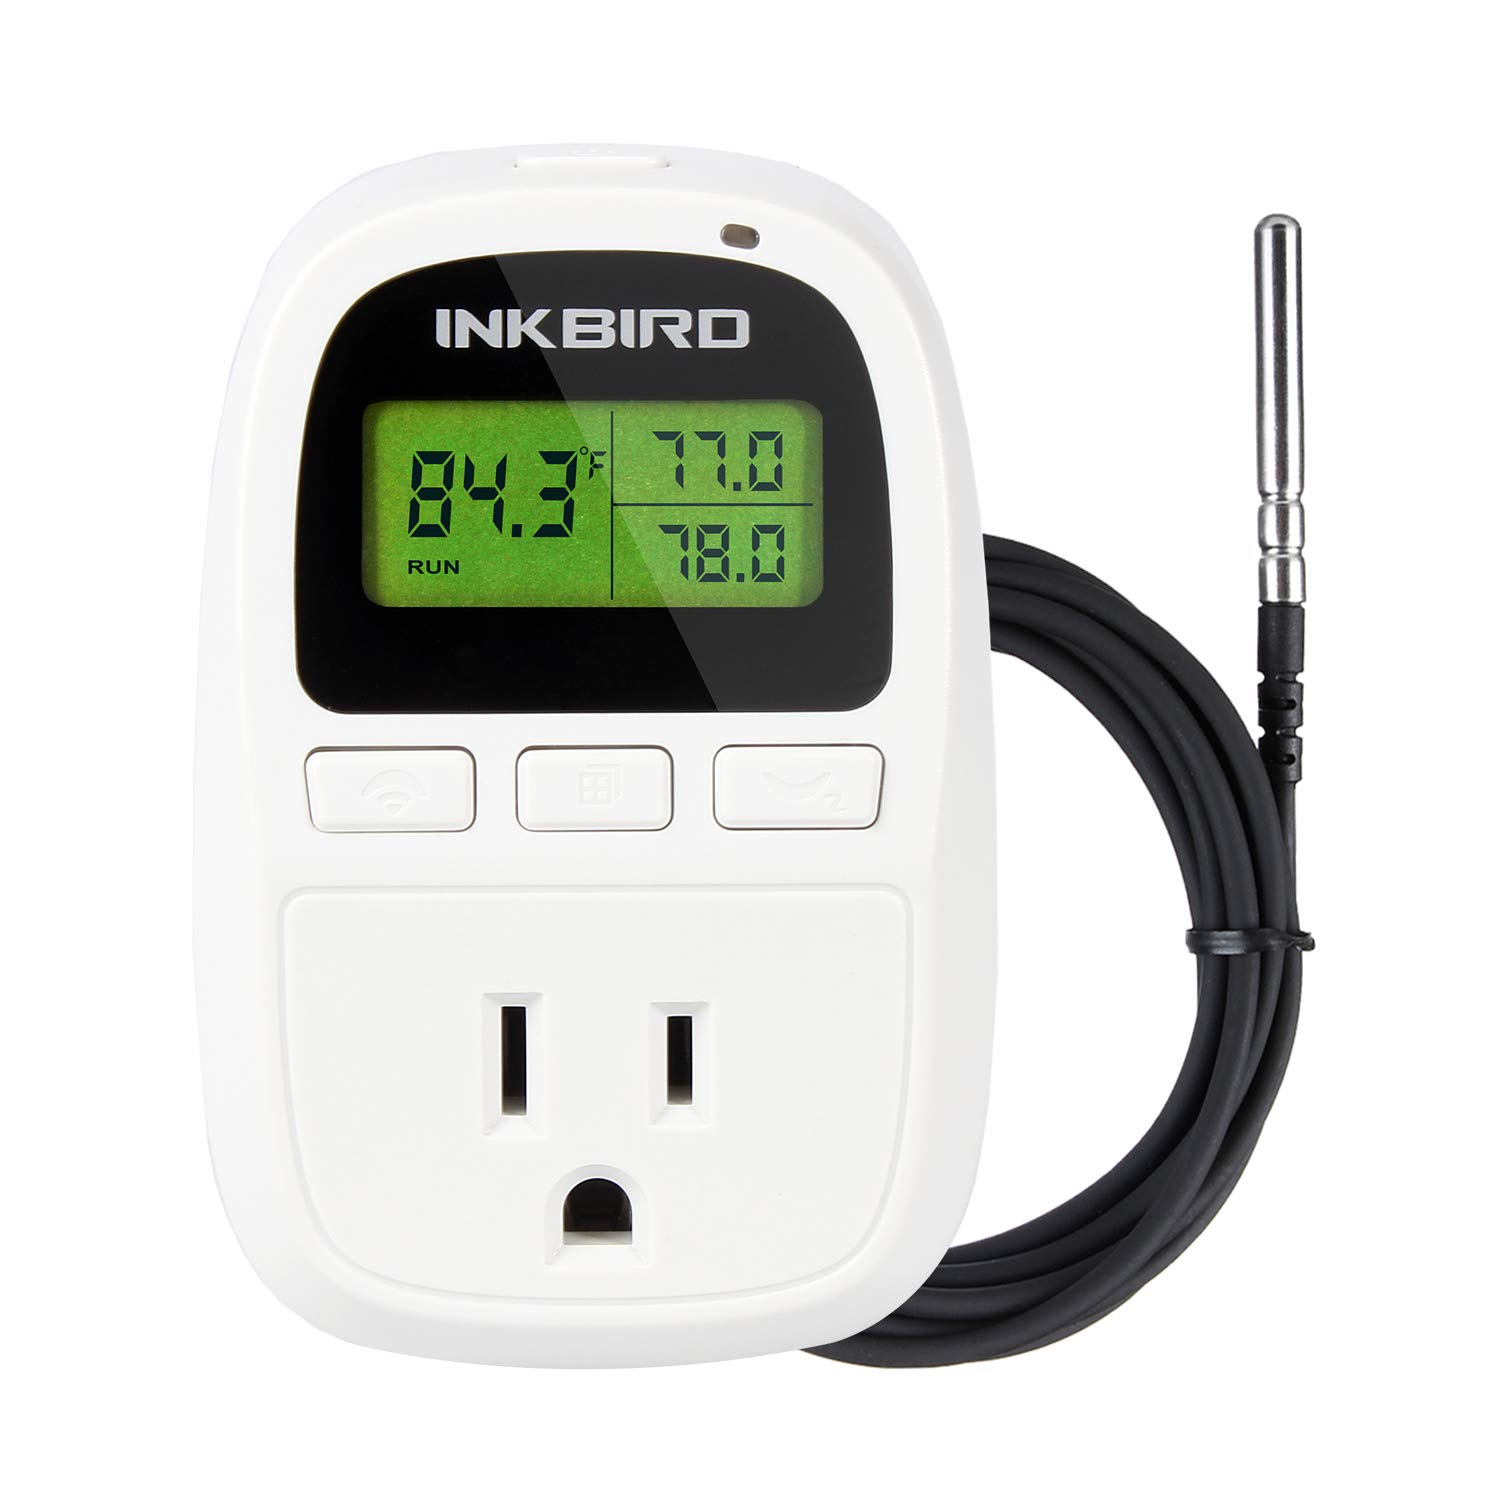 Inkbird 10A Heat Mat Temperature Controller C206 Seeding Thermostats with Outlet and 6.56 Feet NTC Sensor No Cooling and Timer Function